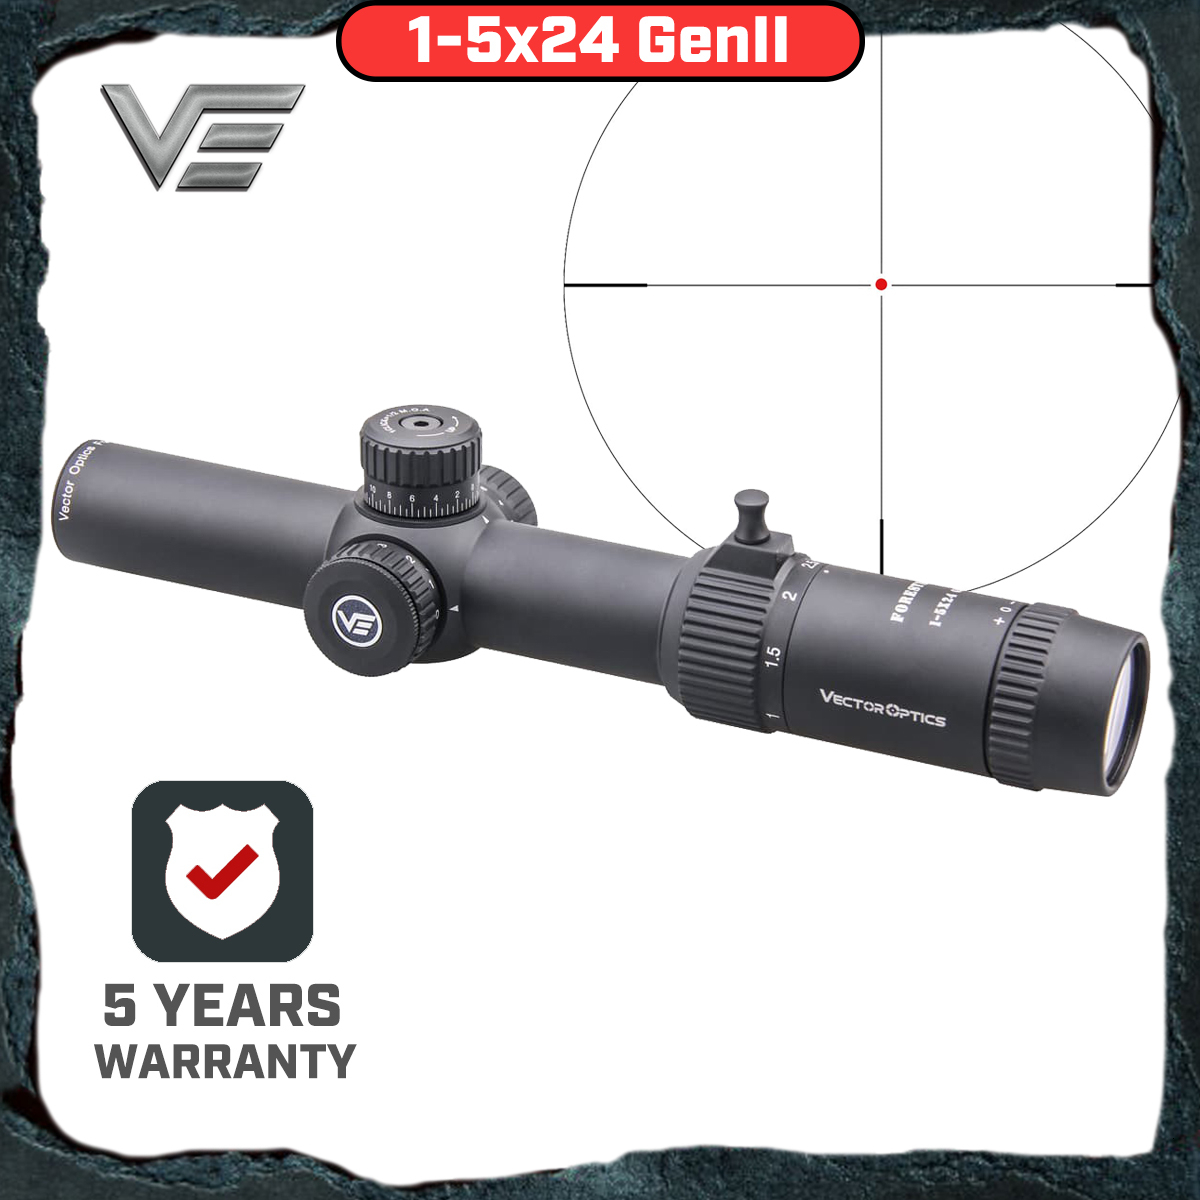 Vector Optics GenII Forester 1-5x24 Riflescope Center Dot Illuminated Air Soft Scope Hunting Rifle Scope Air Gun AR15 Scope image